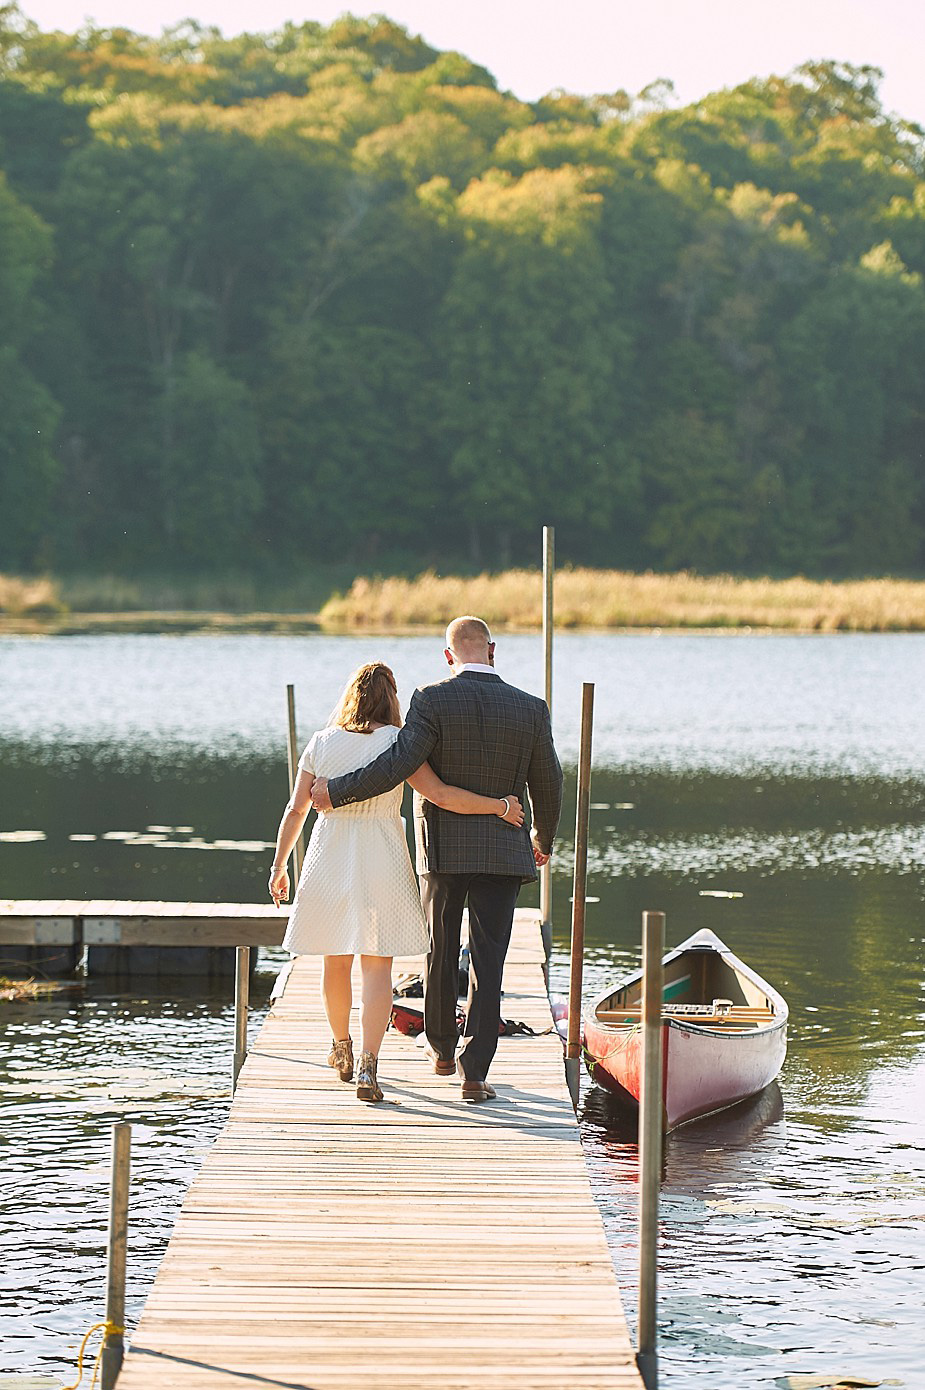 wpid-rustic_minnesota_wedding_25-2015-09-29-21-41.jpg